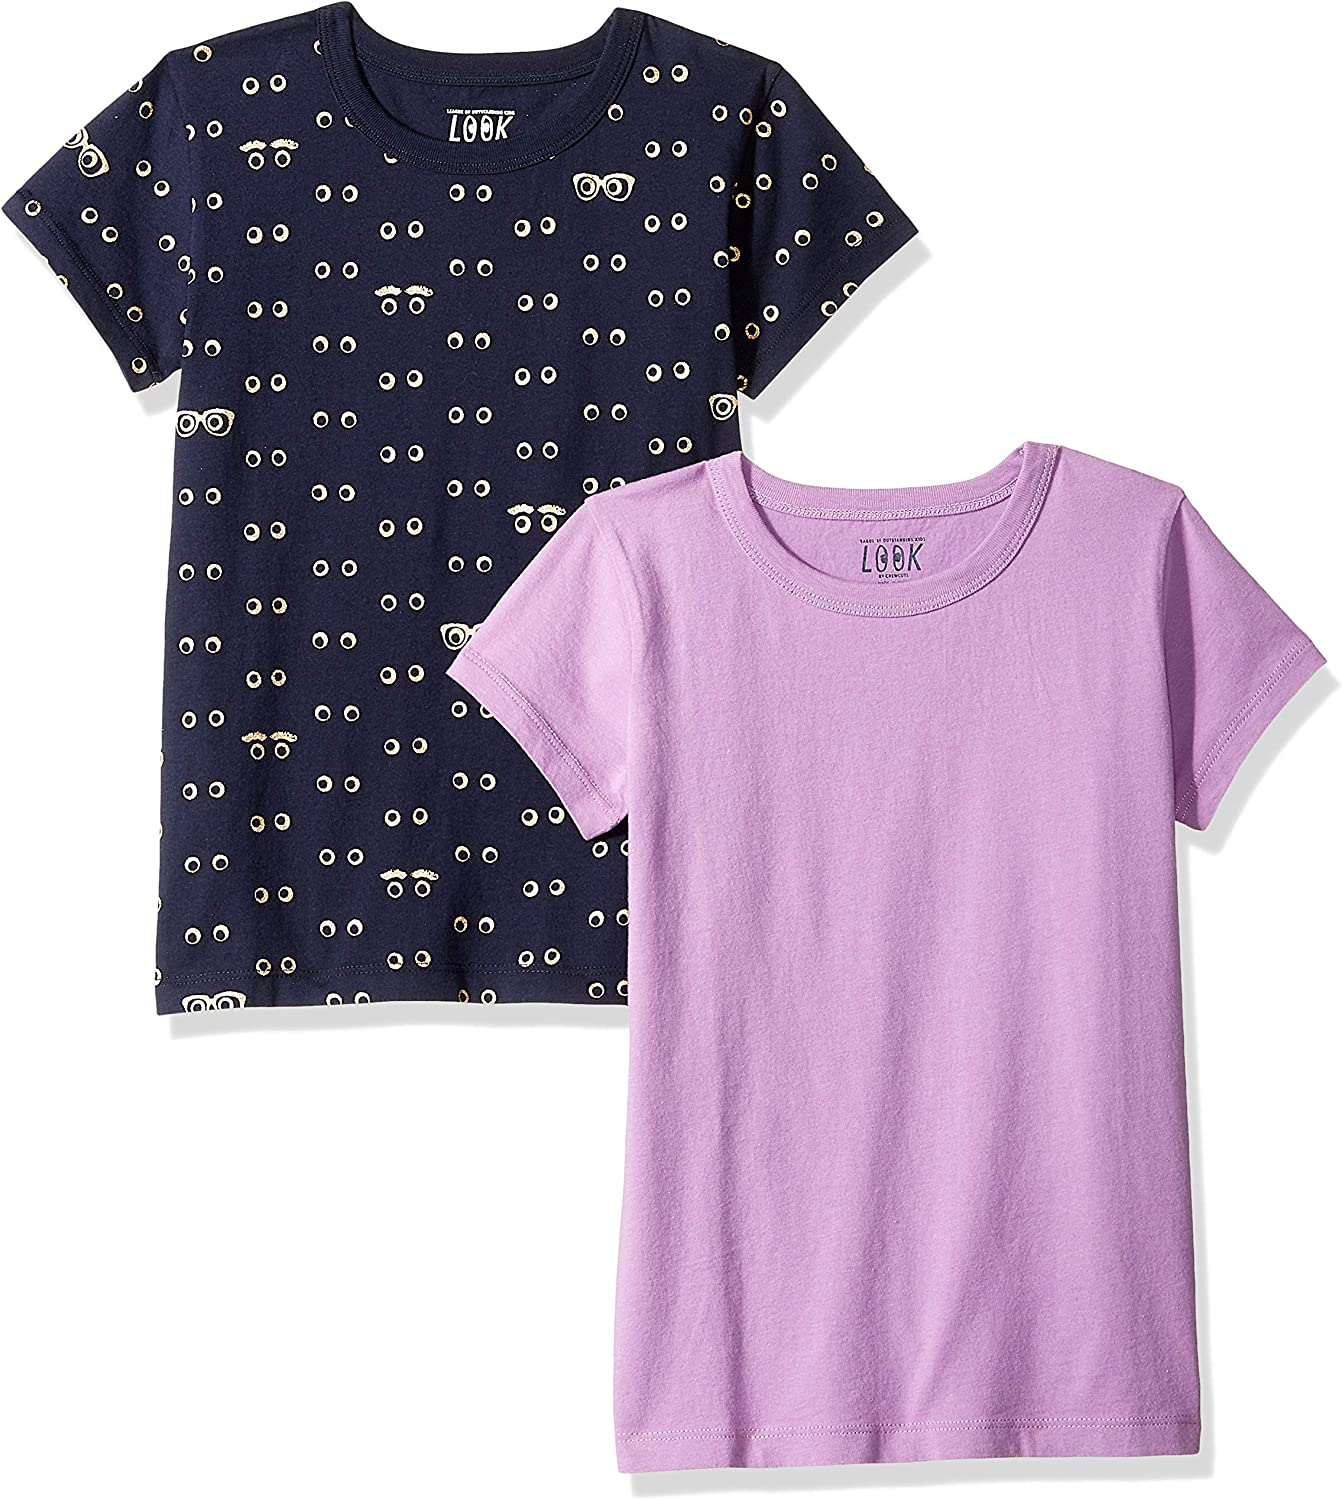 // J Crew Brand LOOK by crewcuts Girls 2-Pack Print//Solid Short Sleeve T-Shirt